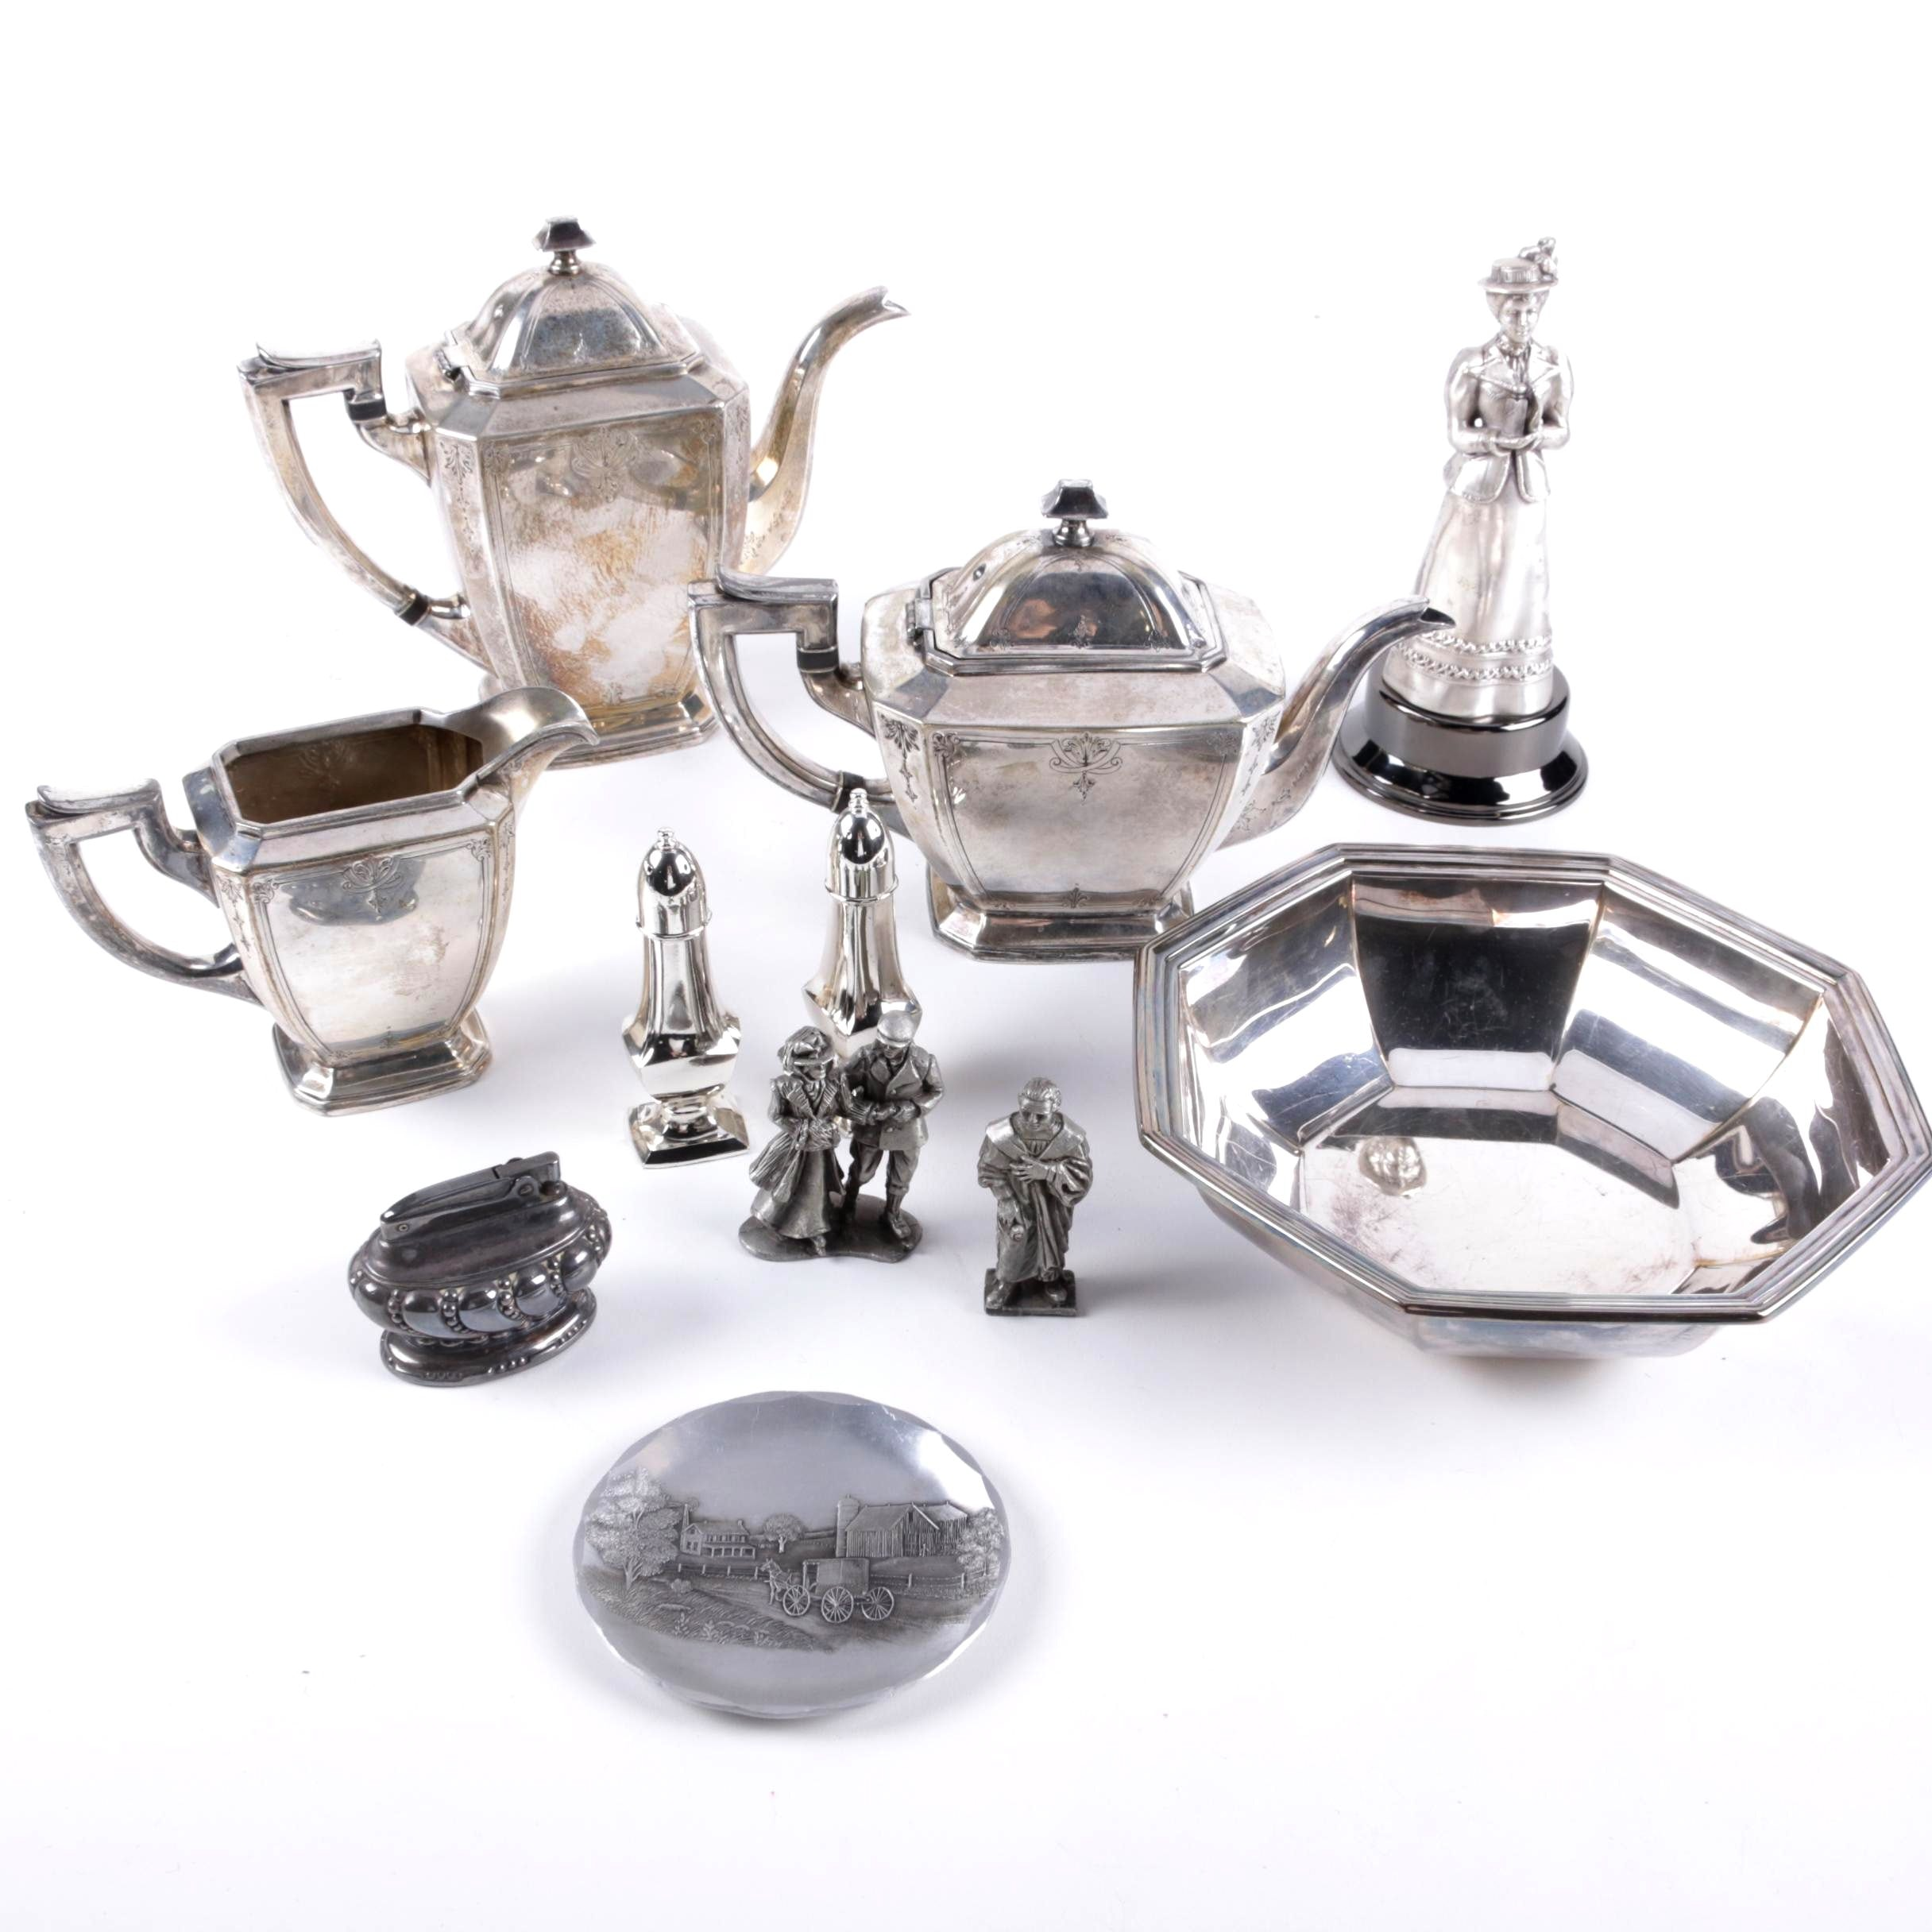 Sheffield and More Plated Silver and Pewter Tableware and Figurines